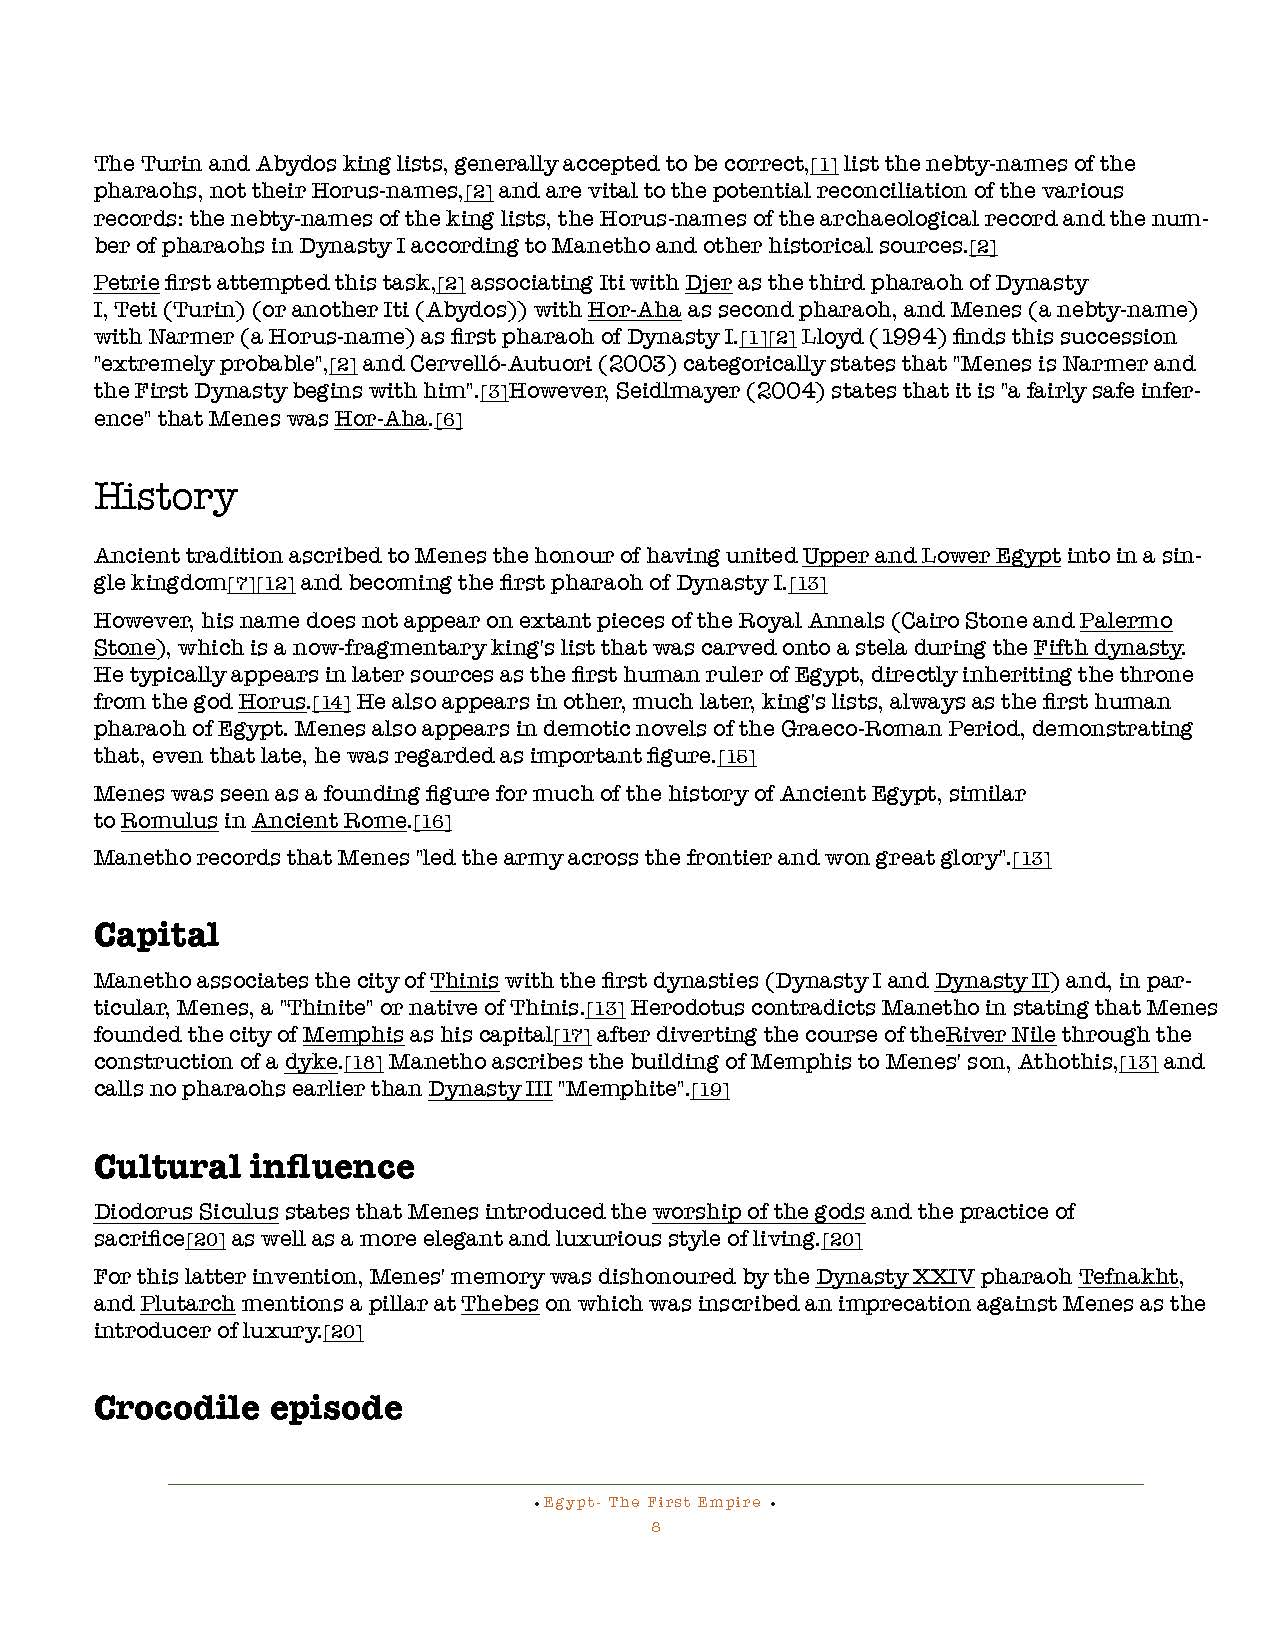 HOCE- Egypt  (First Empire) Notes_Page_008.jpg